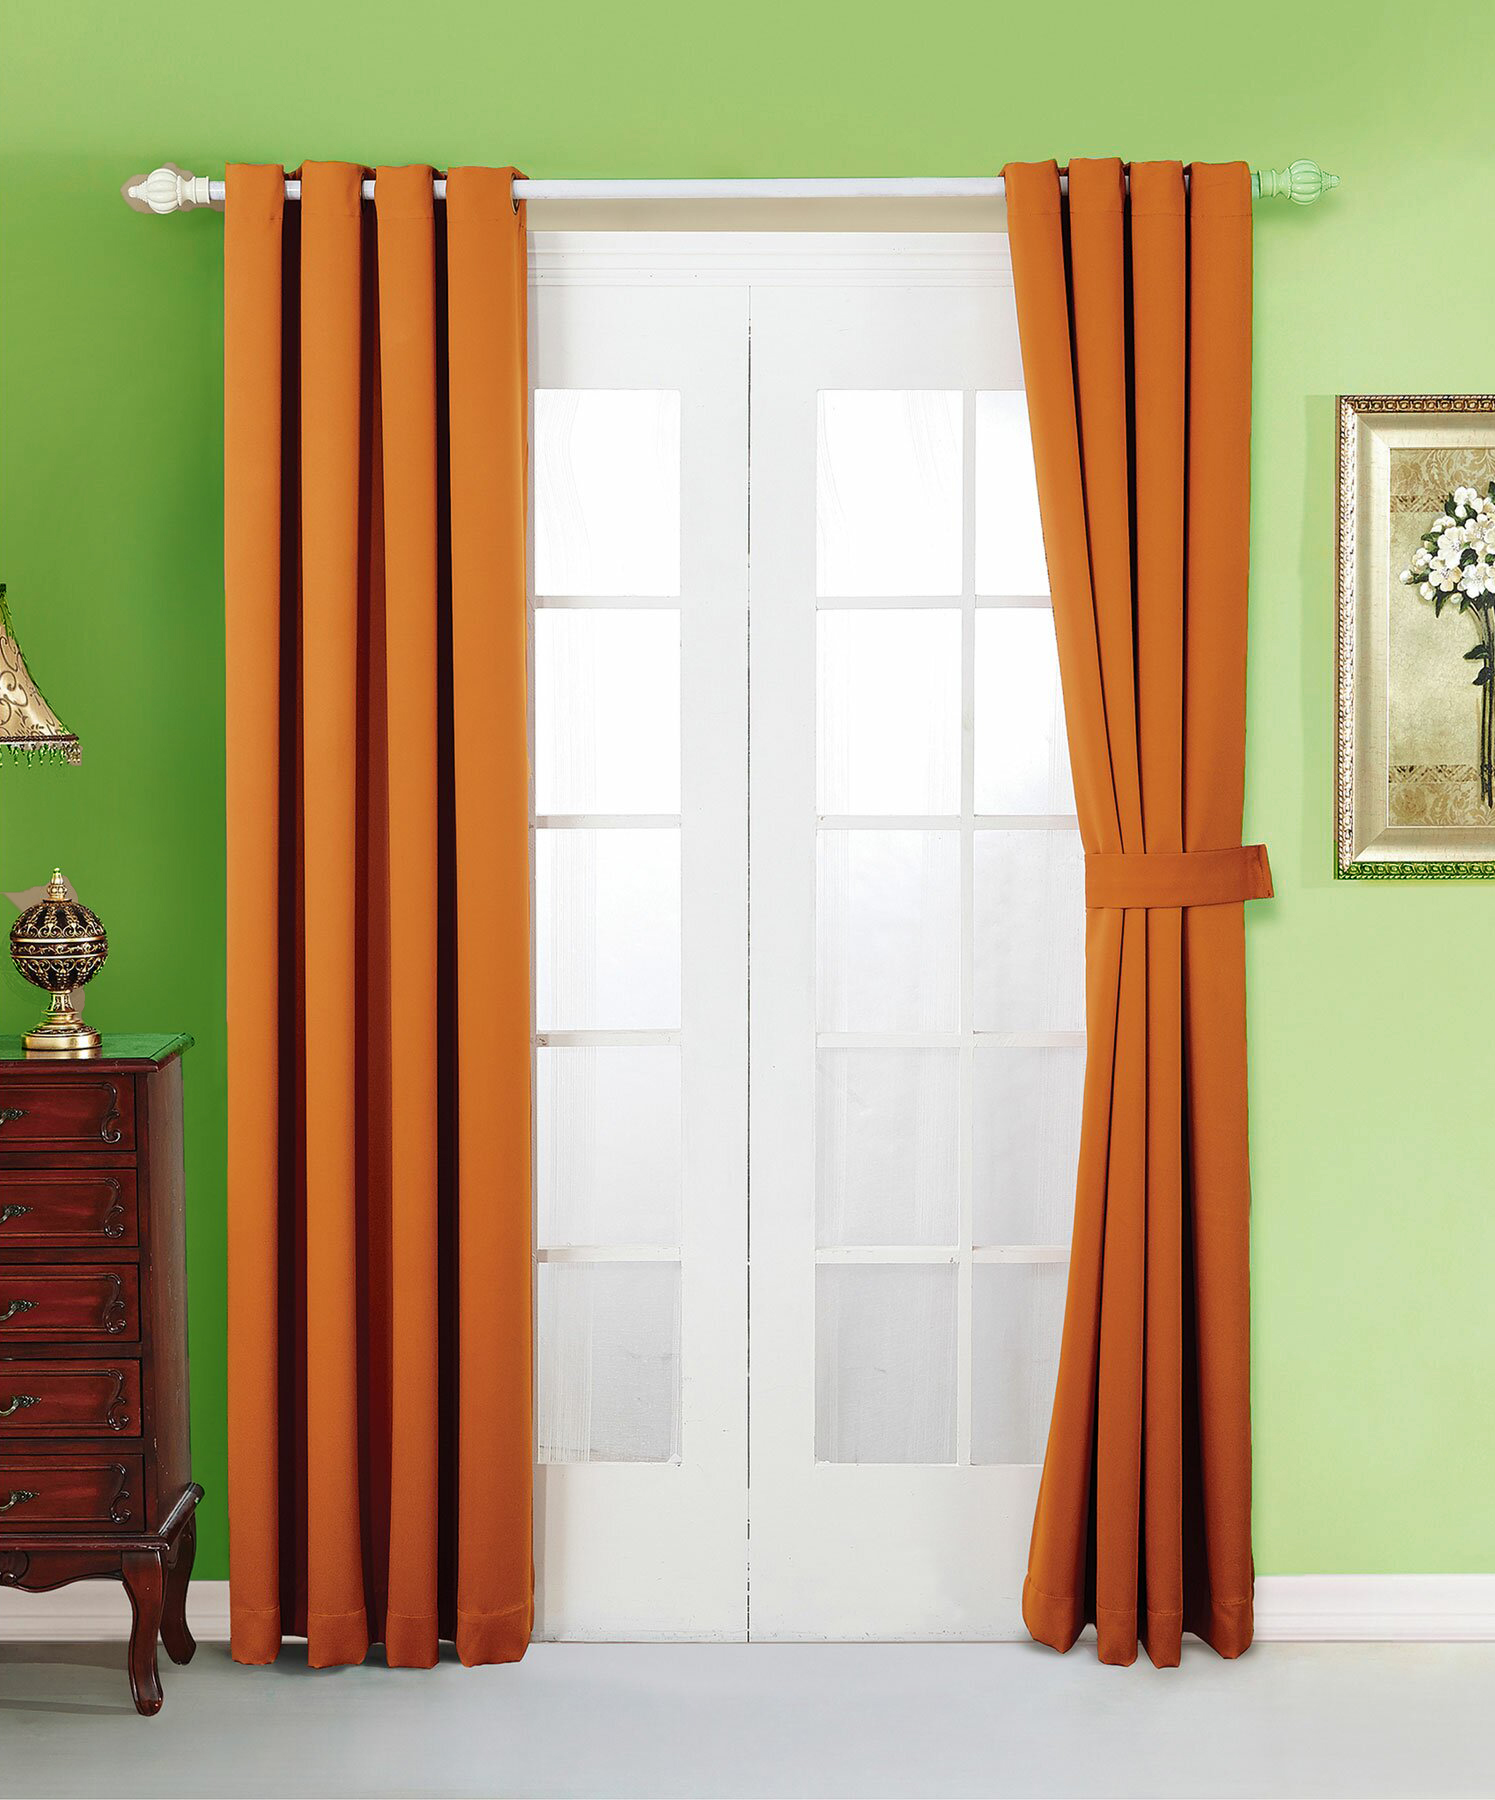 Orange Curtains for a Pop of Color